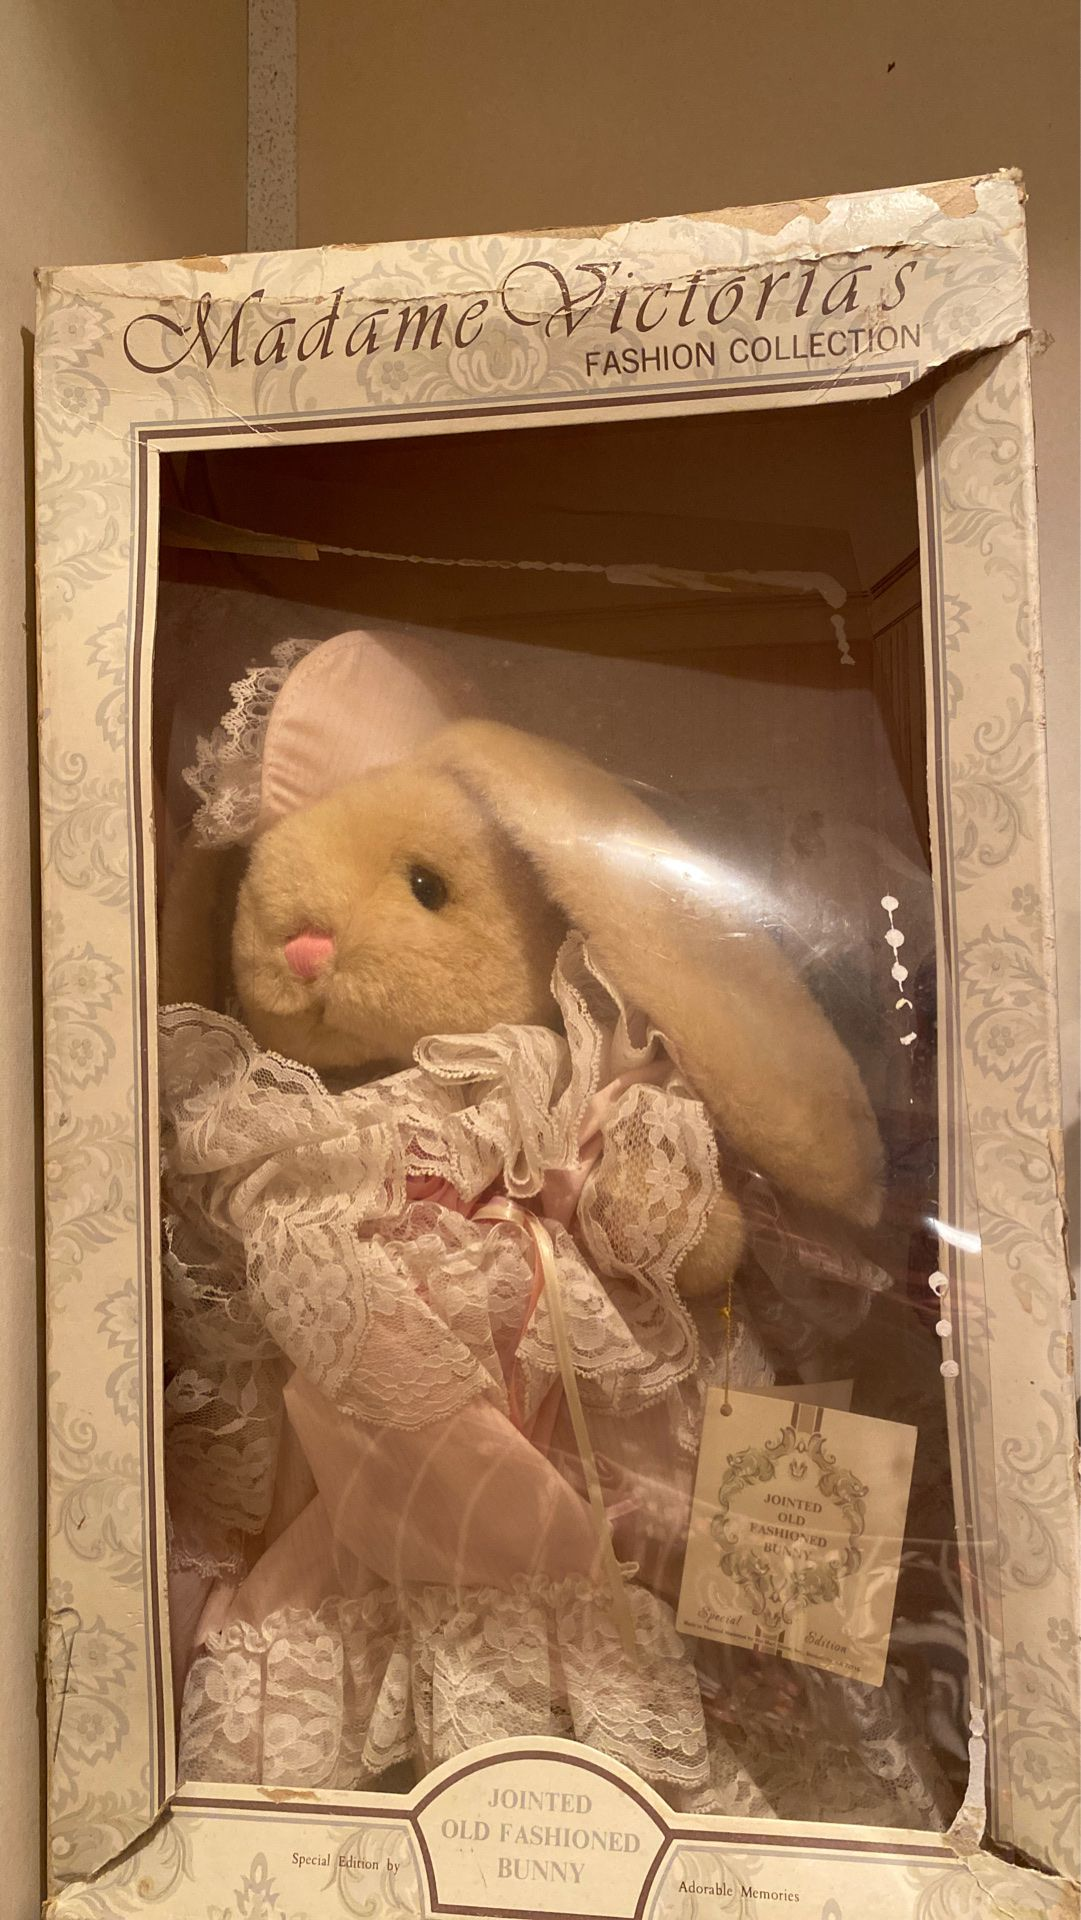 Madame Victoria's Jointed Old Fashion Bunny